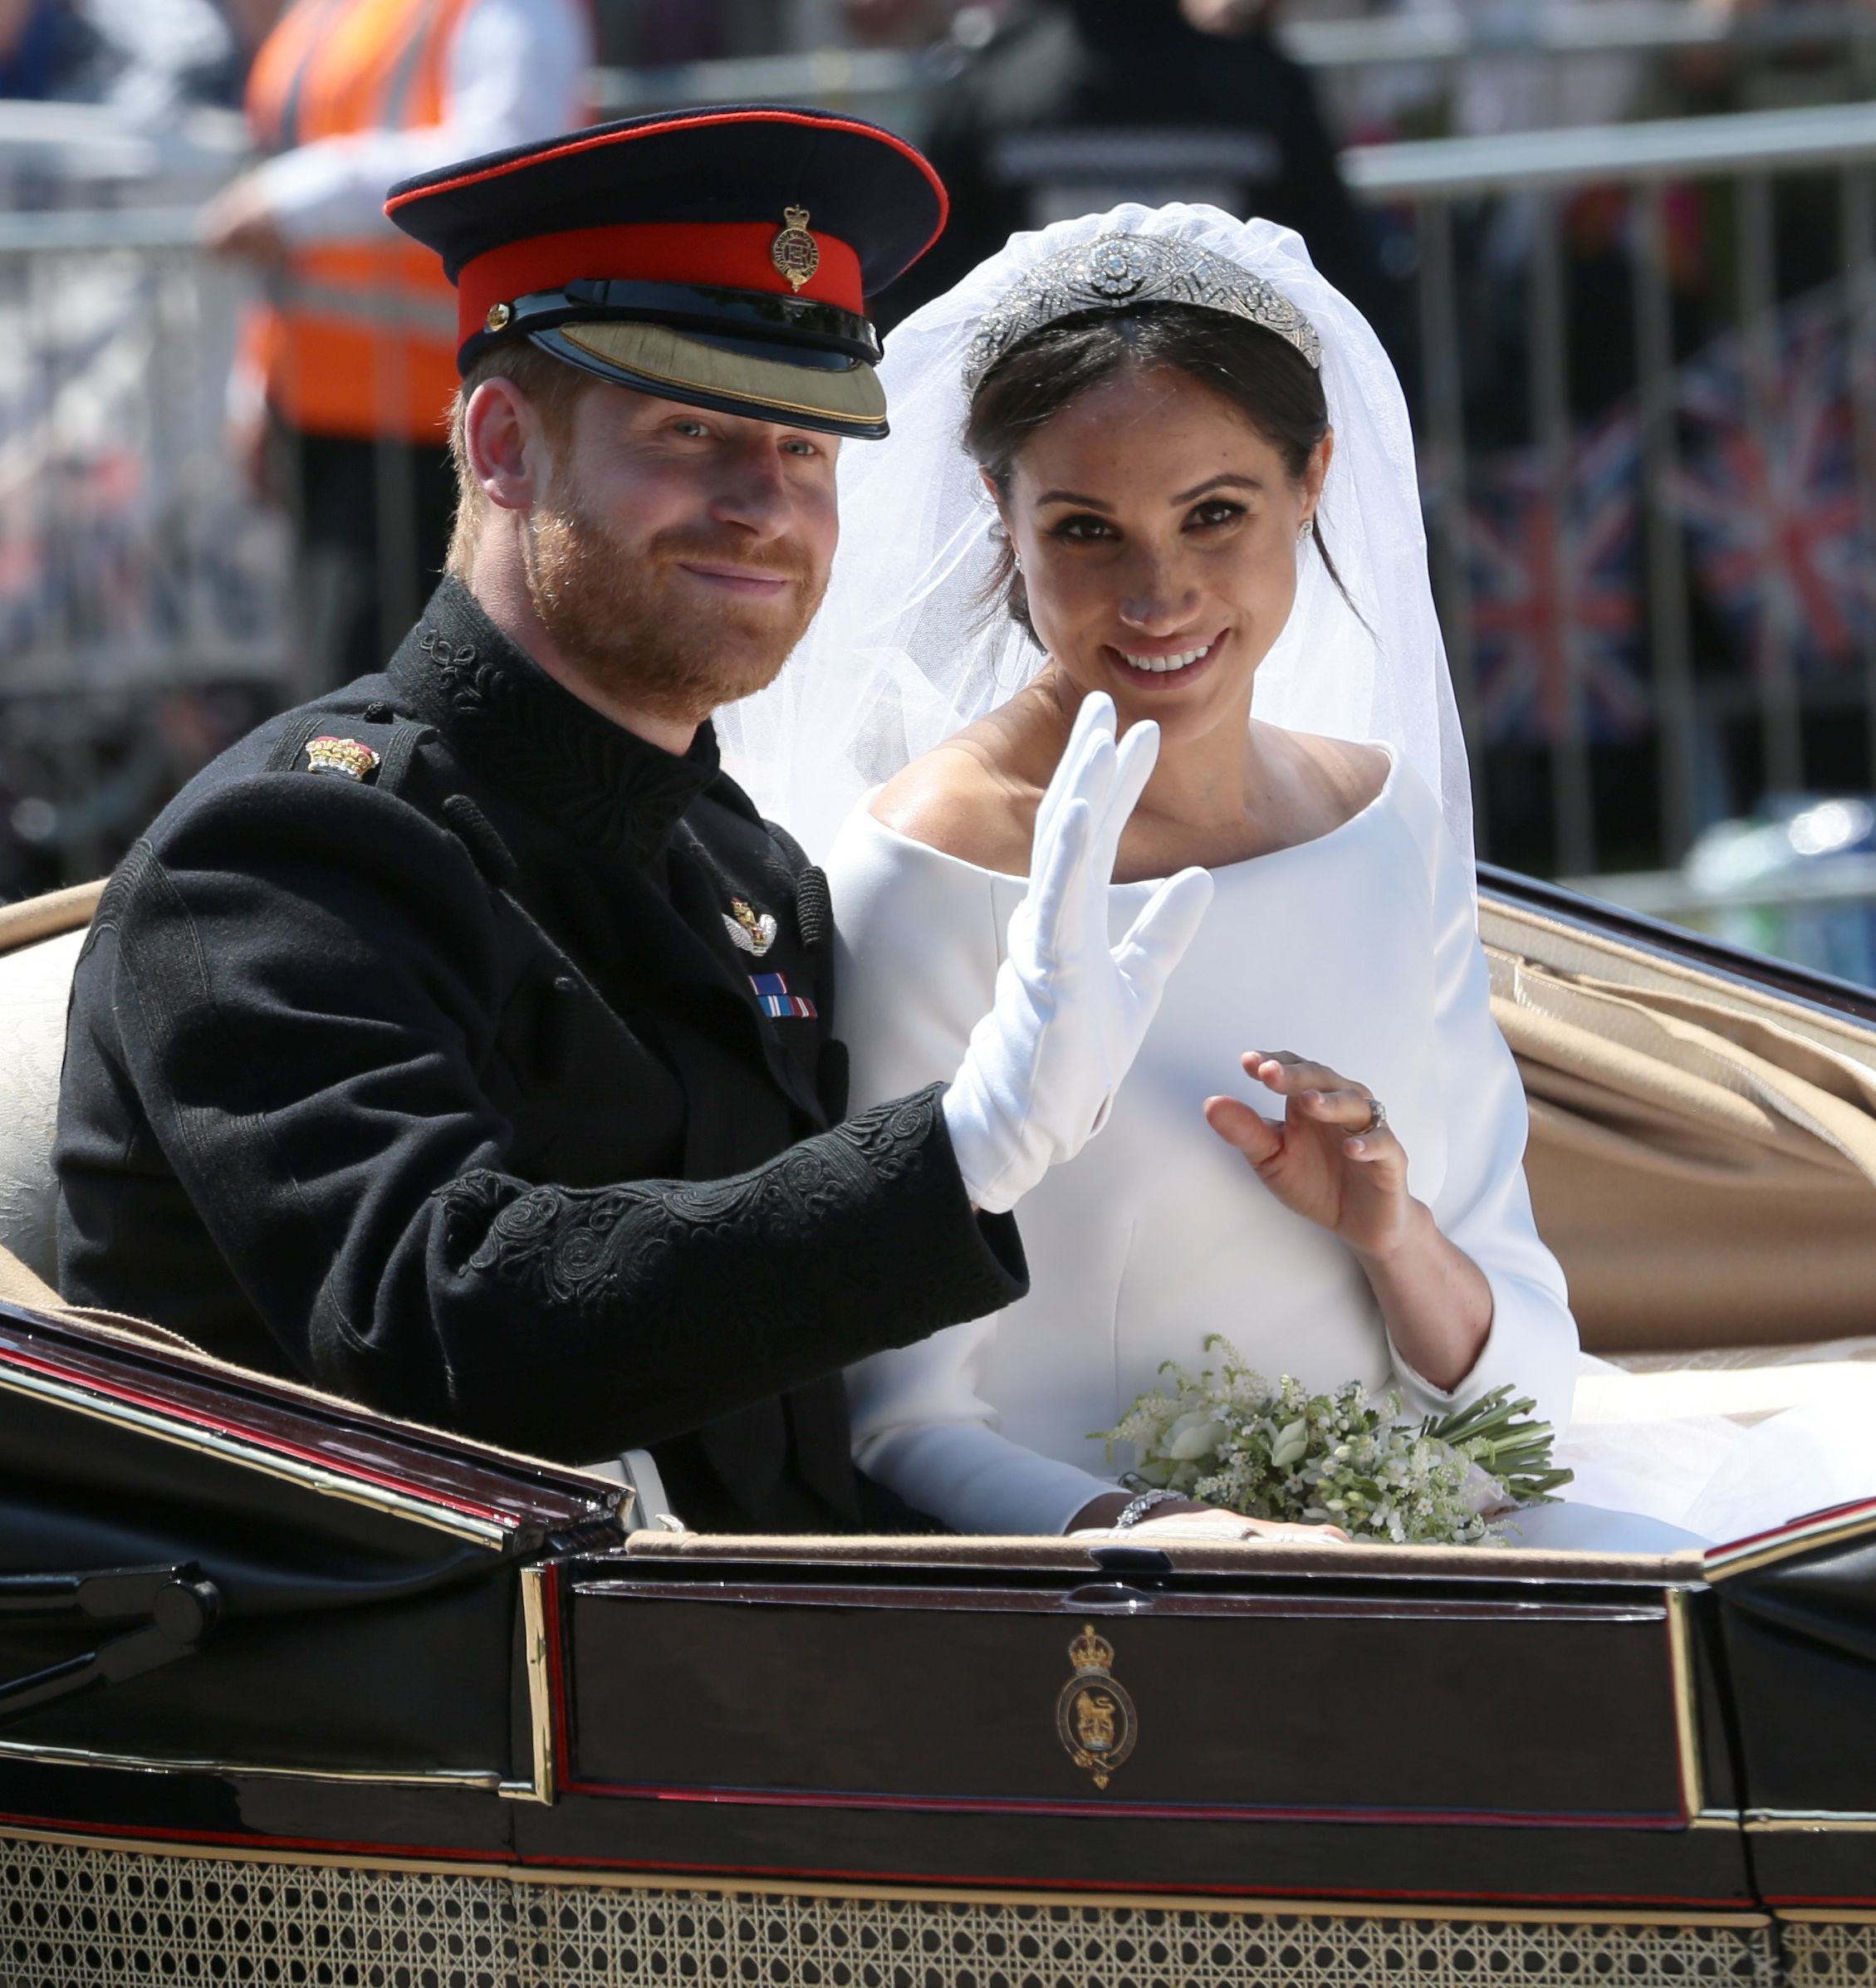 Prince Harry And Meghan Markle's Empty Seat Wasn't